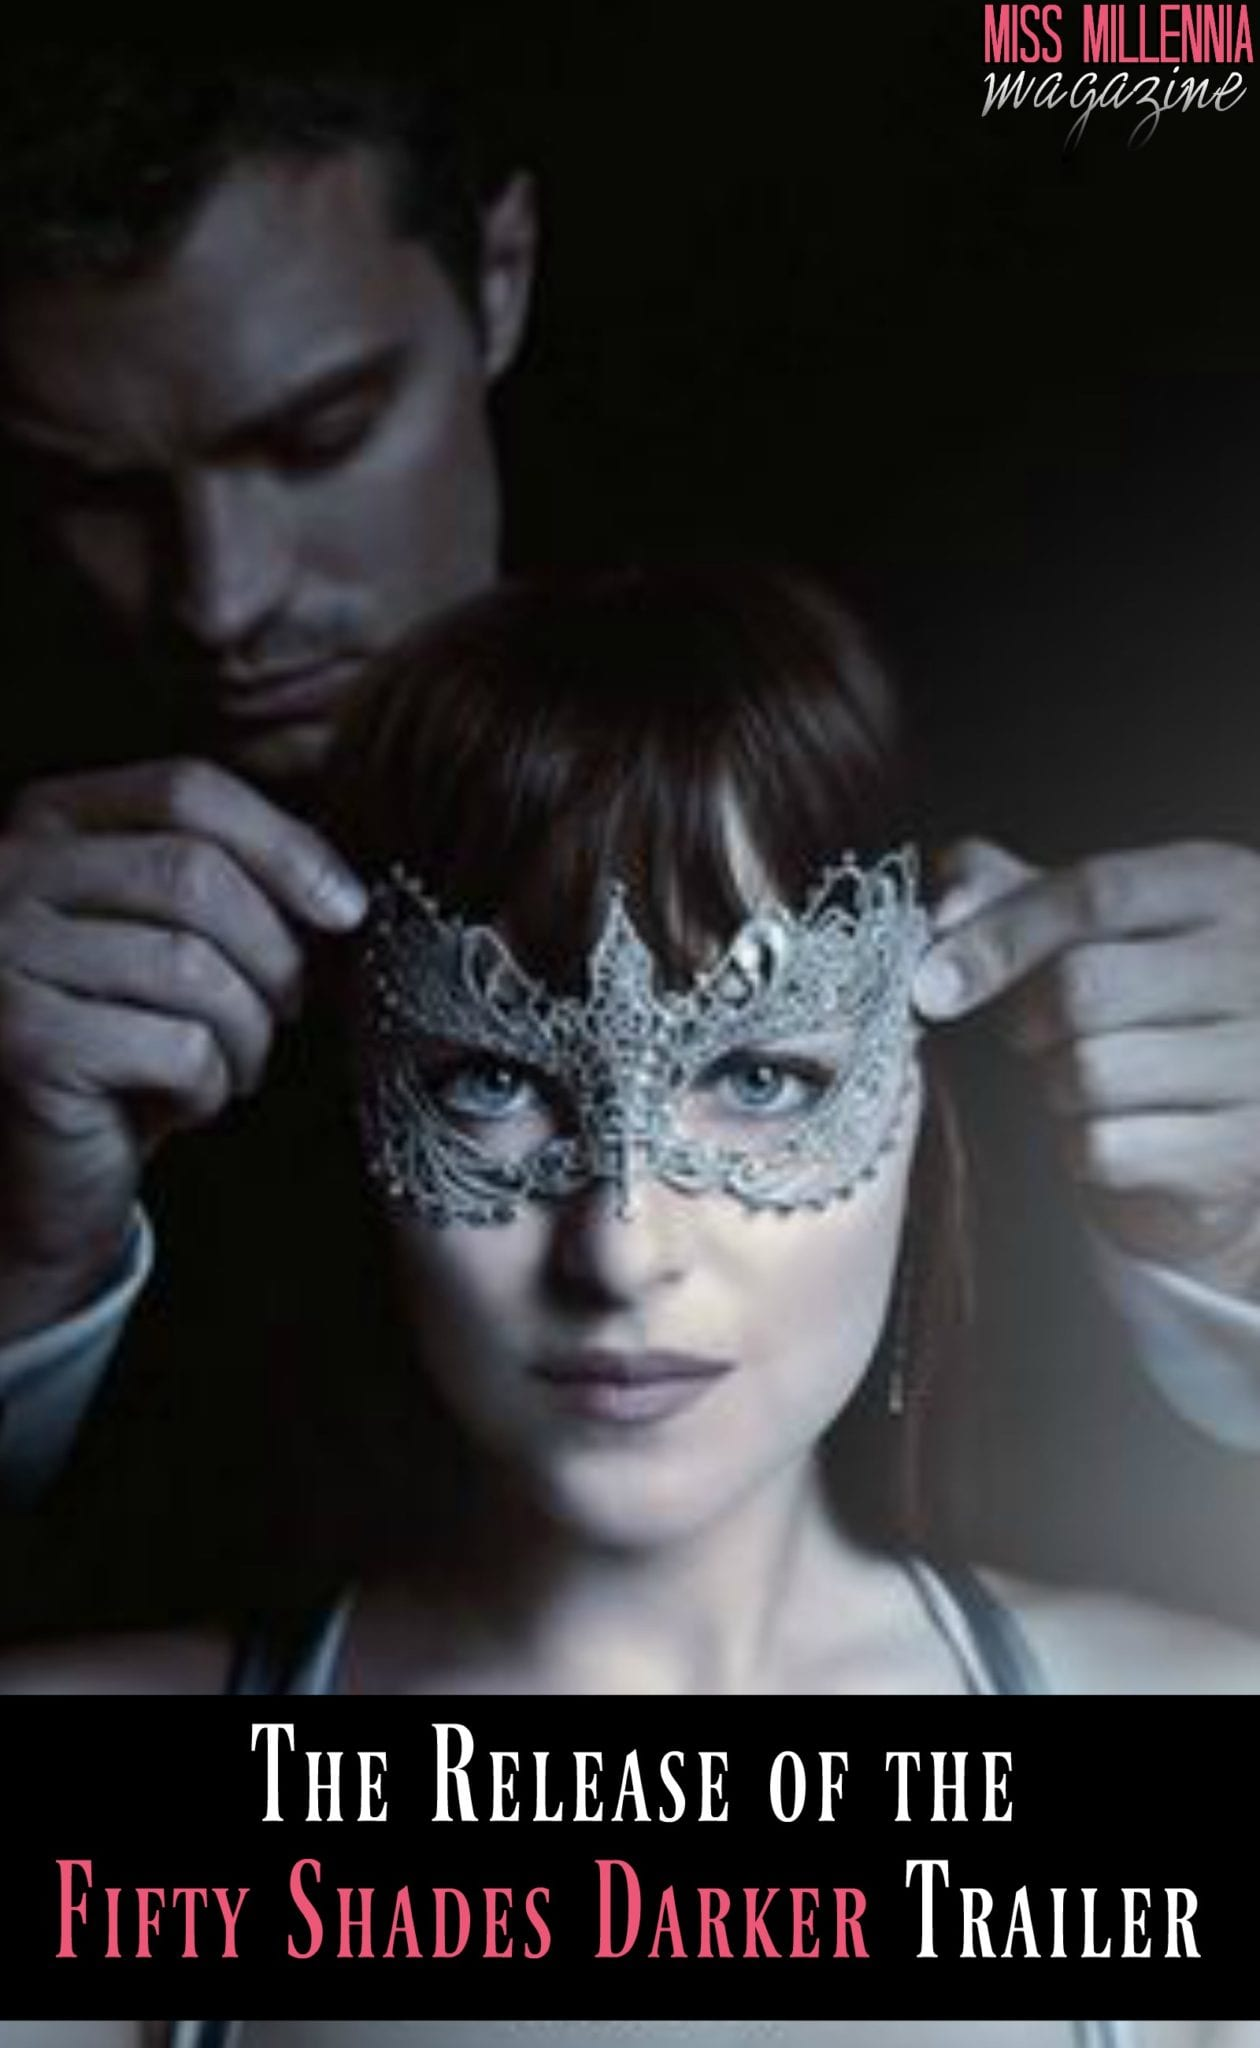 Haven't seen the Fifty Shades Darker trailer yet? Come take a look and let's discuss!